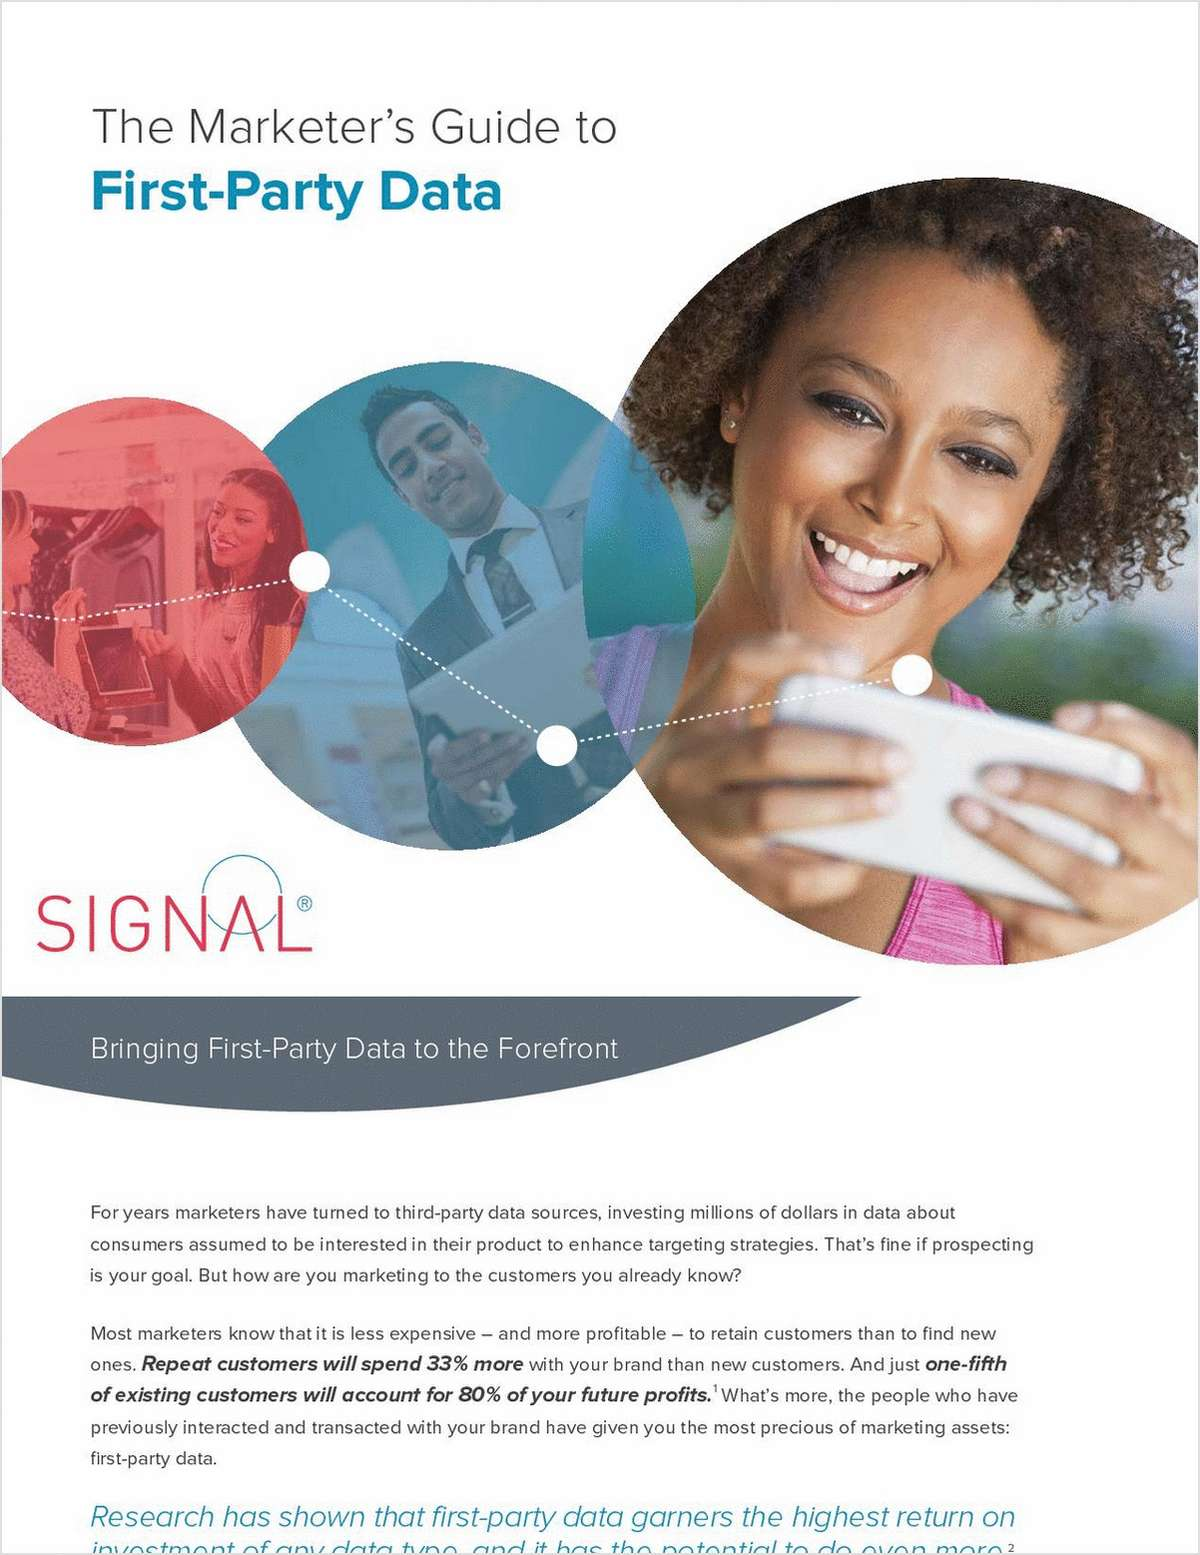 Why Marketers Use First-Party Data to Drive Brand Loyalty and Customer Retention